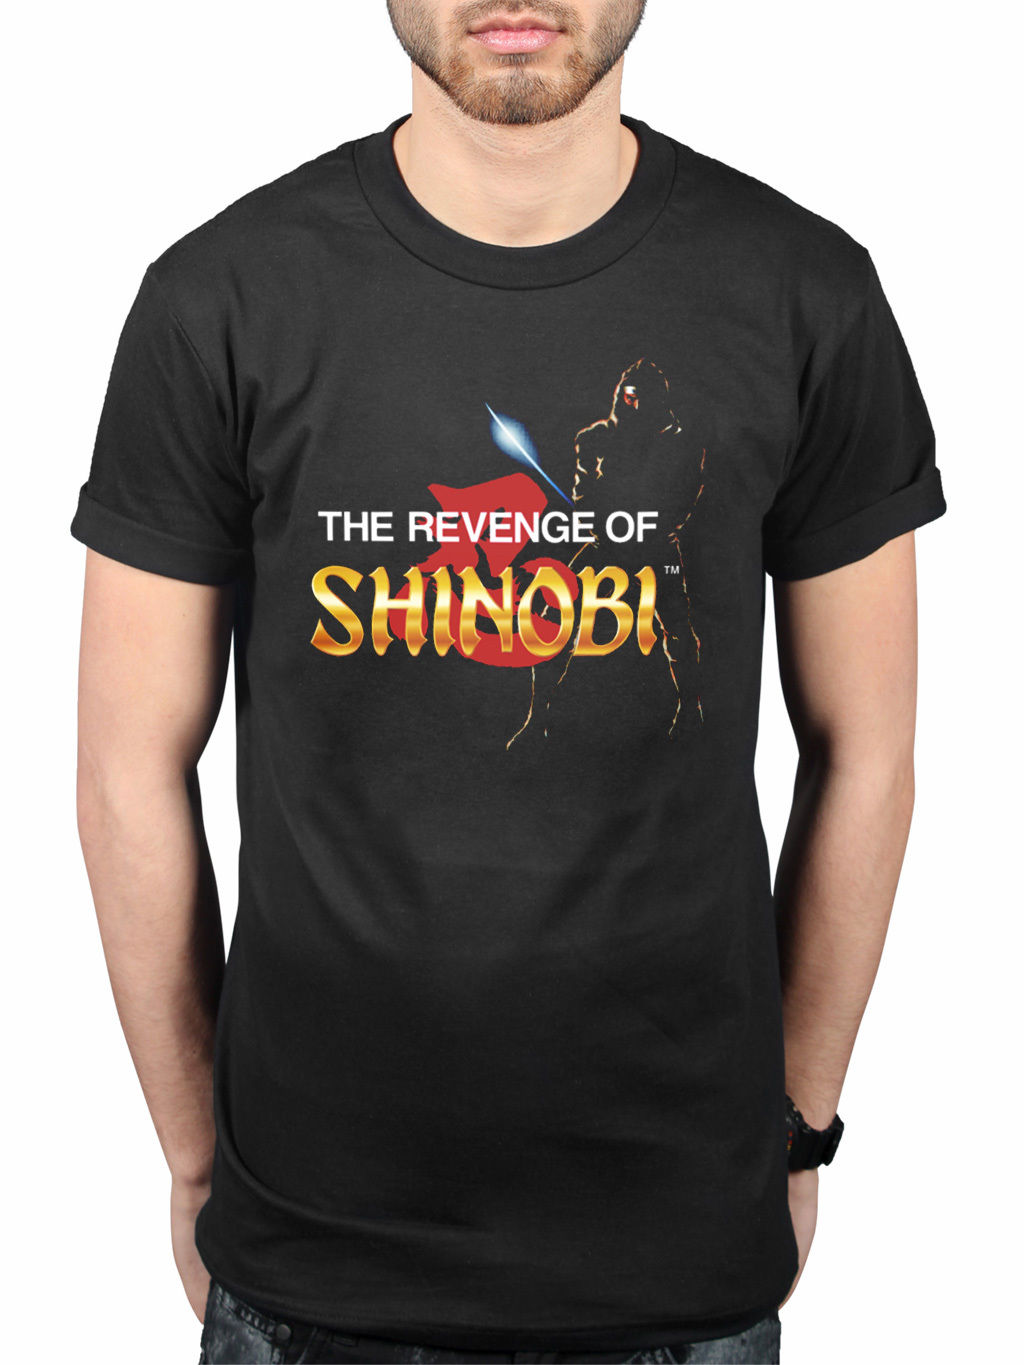 Basic Tops Official Sega Revenge Of Shinobi Retro T-Shirt Classic Game Merchandise Genesis